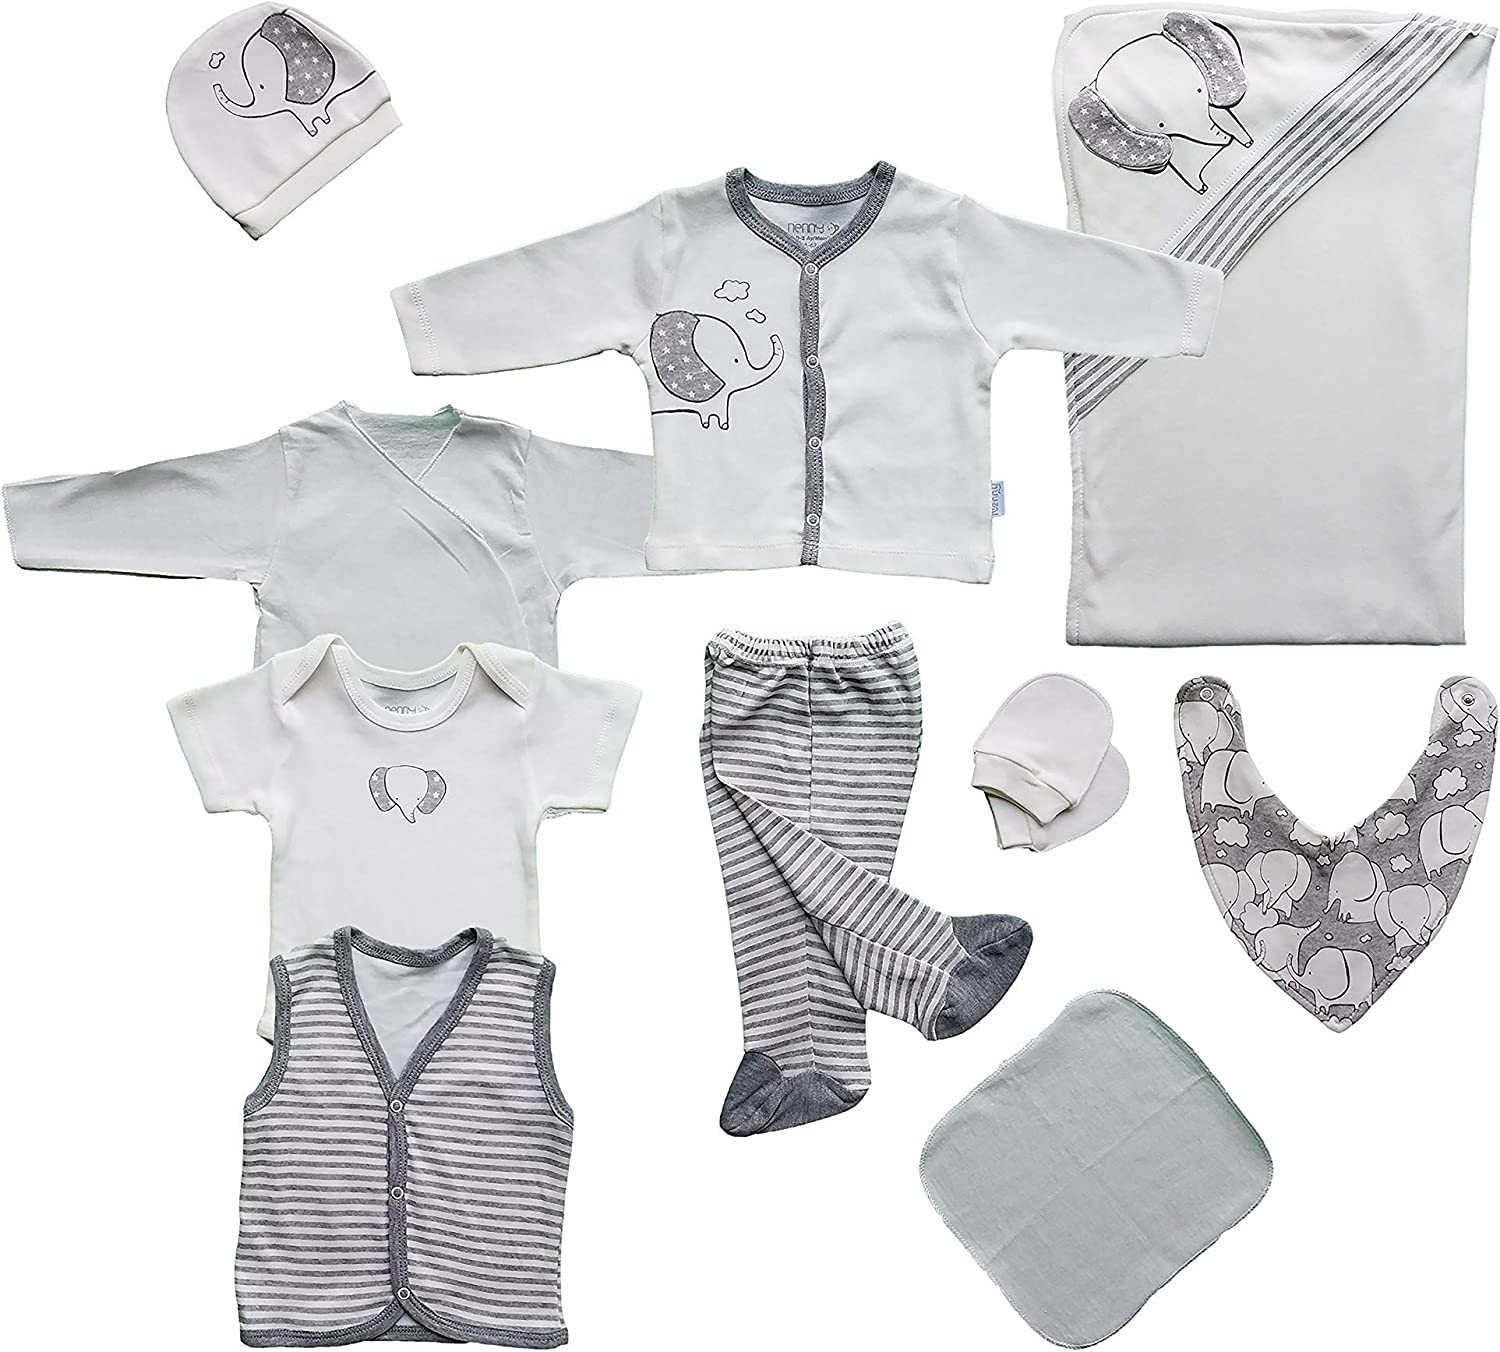 10PC Newborn Baby Layette Gift Set | Basic Essentials for Baby Boys/Girls | Take me Home Outfit | 100% Cotton | Baby Registry White/Grey